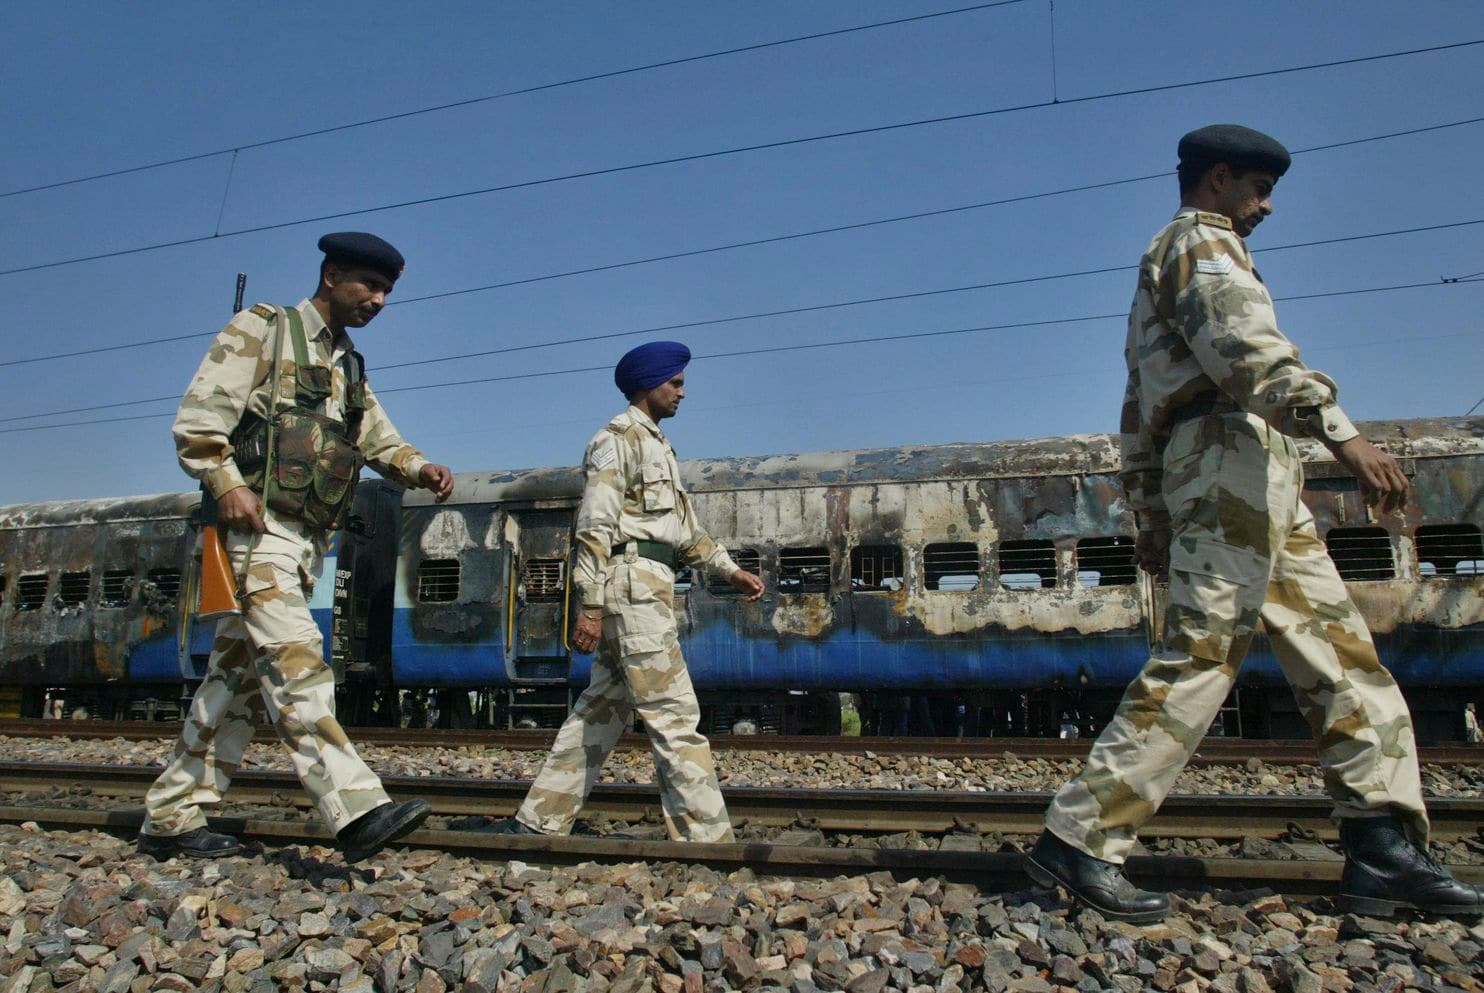 Indian court acquits 4 Hindu activists in train bombing that killed over 40 Pakistani nationals